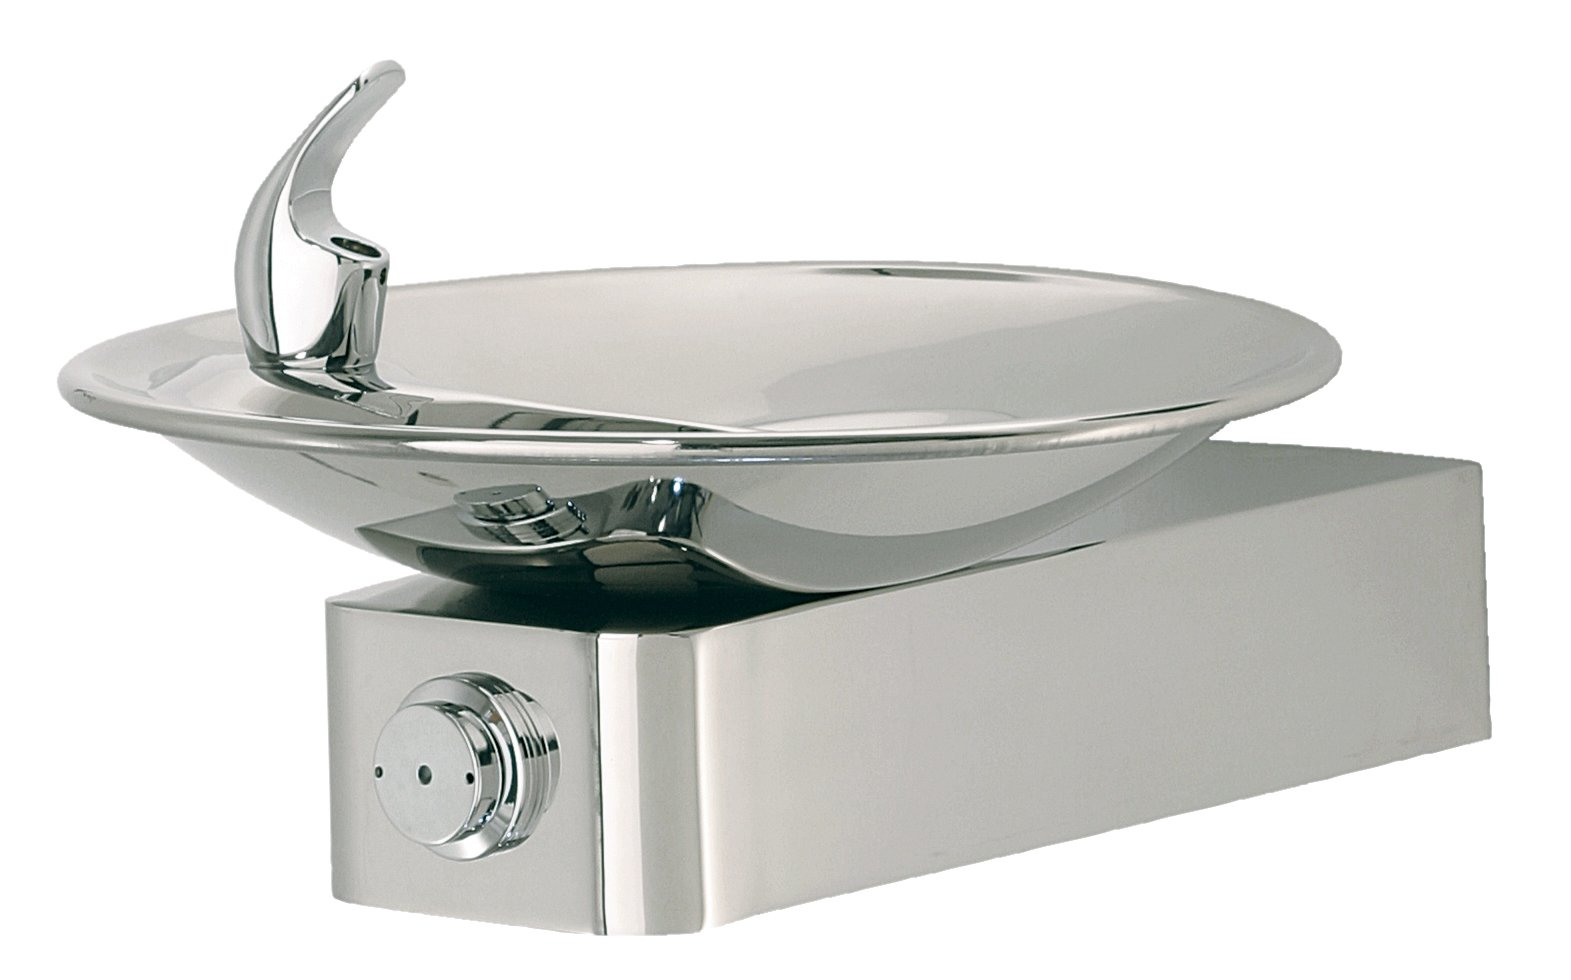 Haws 1001HPS High Polished 18 Gauge 304 Stainless Steel Barrier-Free Drinking Fountain with Sculpted Bowl (Mounting Frame Not Included)